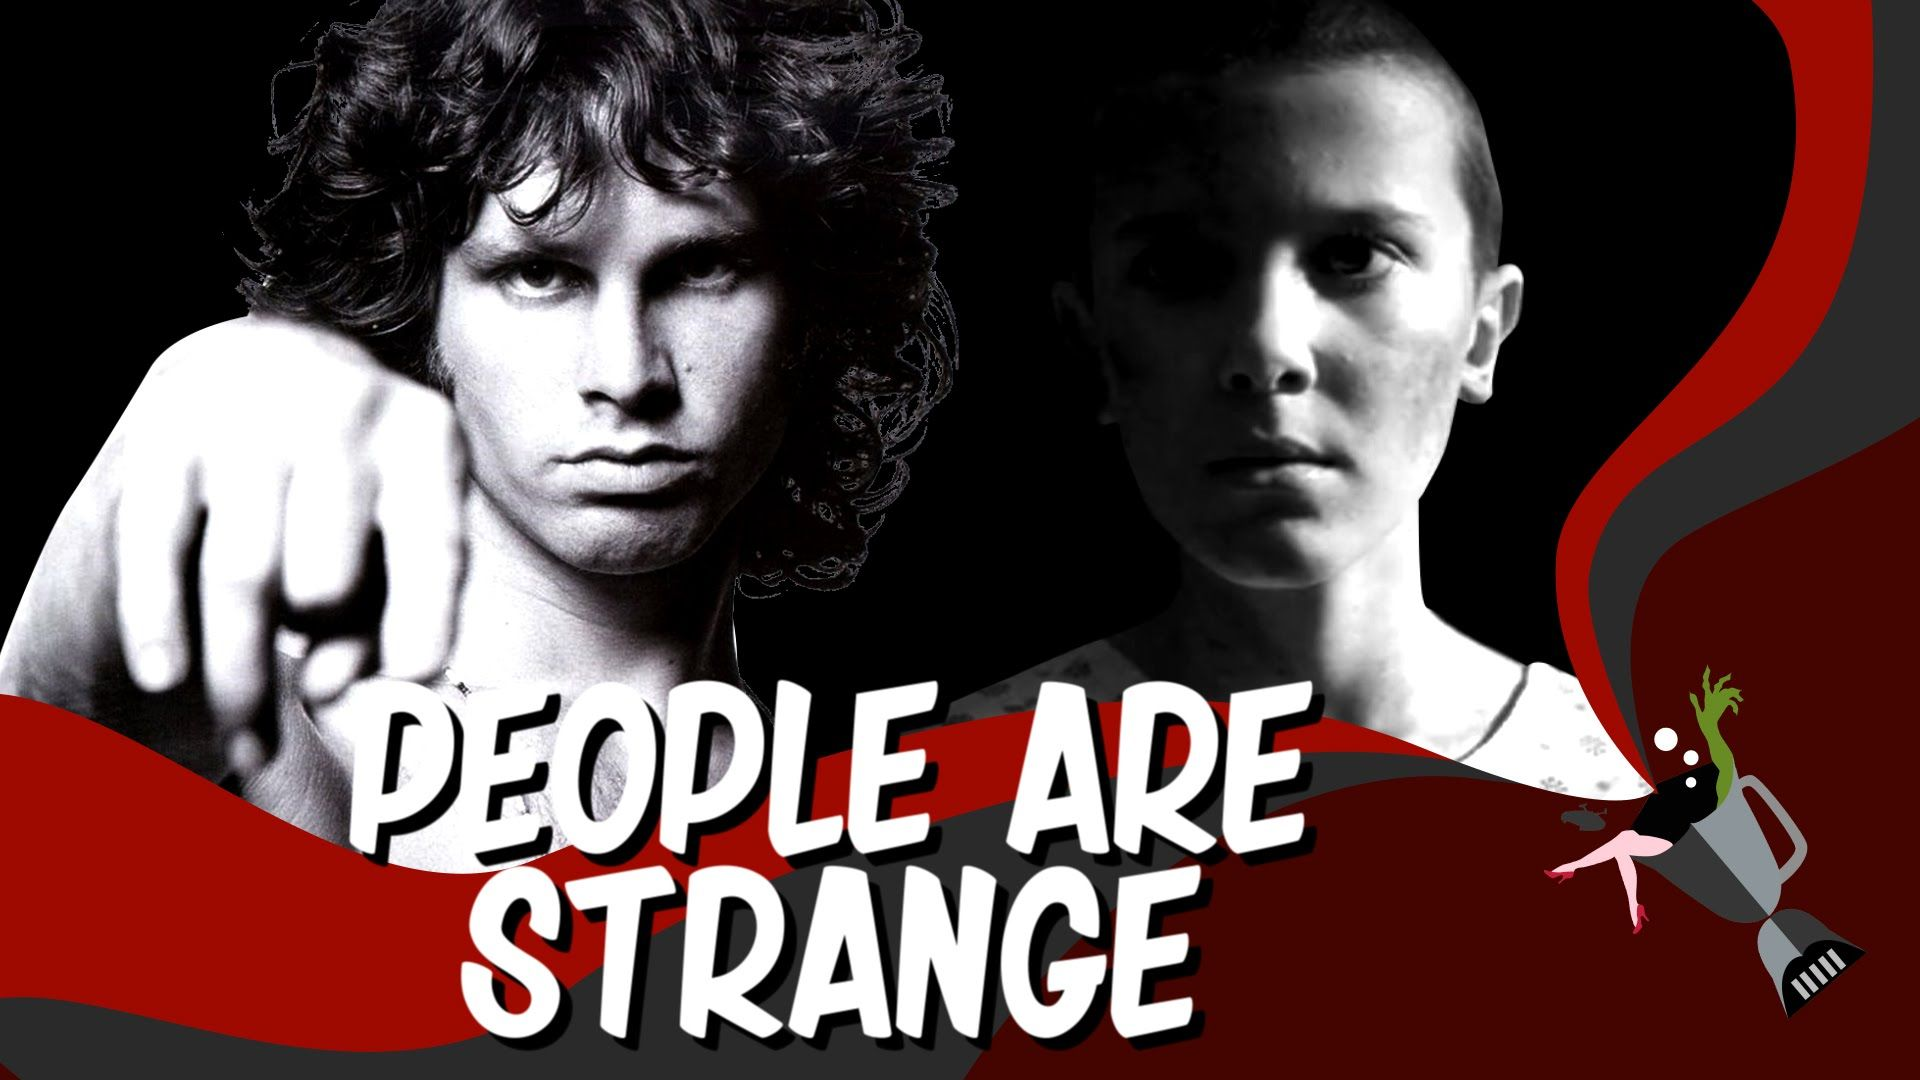 A Mashup of Stranger Things and The Doors Song \u0027People Are Strange\u0027  sc 1 st  Pinterest & A Mashup of Stranger Things and The Doors Song \u0027People Are Strange ...